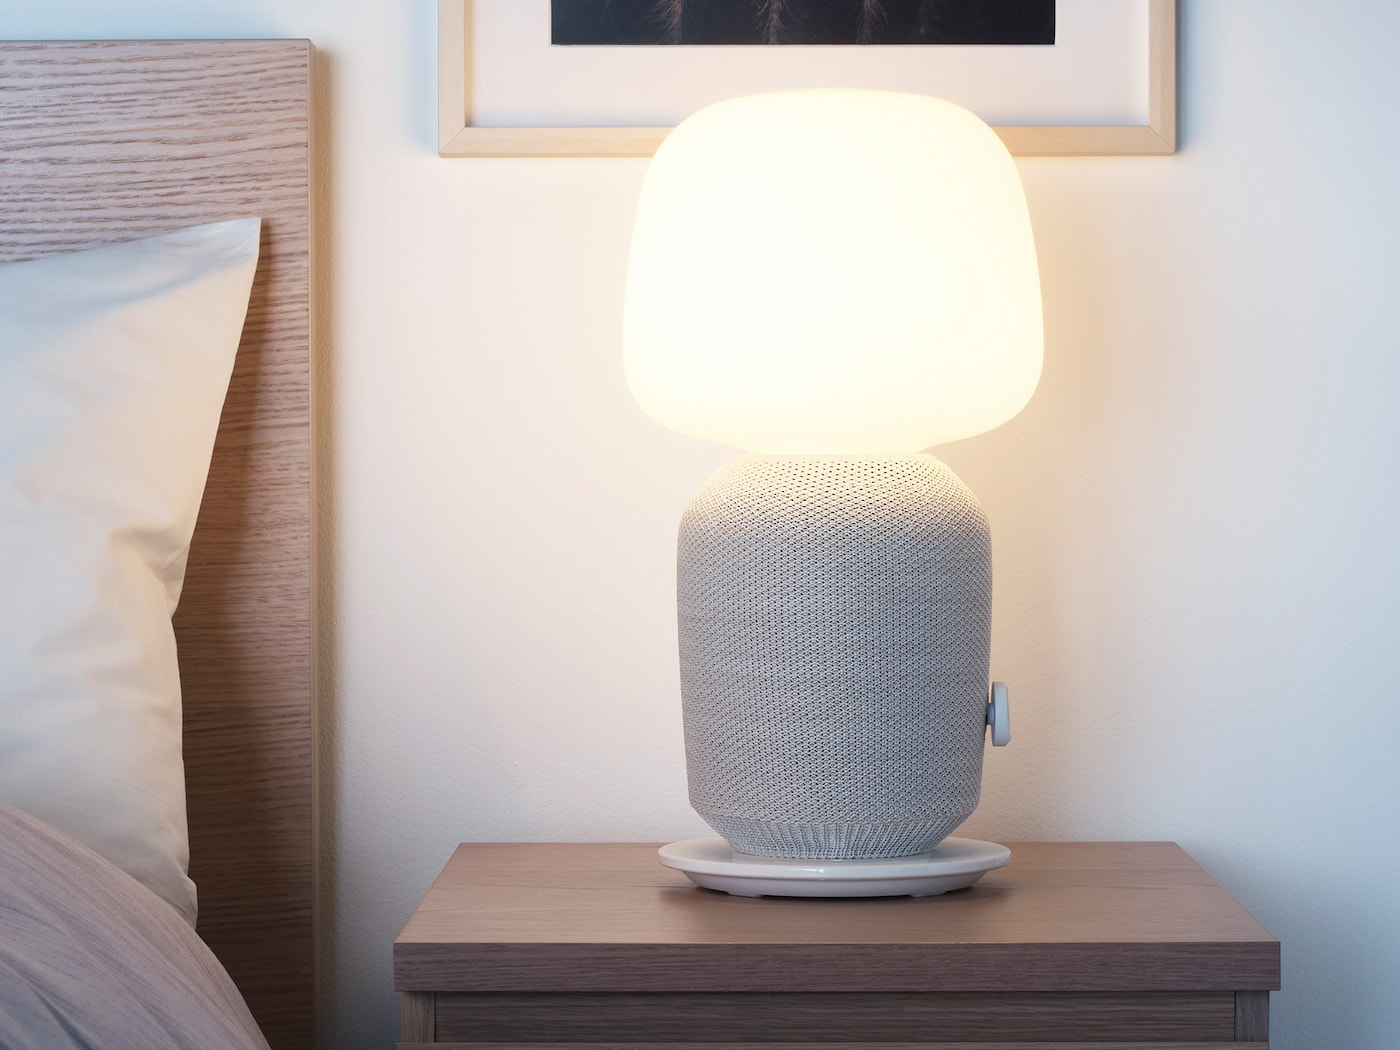 SYMFONISK table lamp with WiFi speaker in white/grey placed on a bedside table next to a bed.